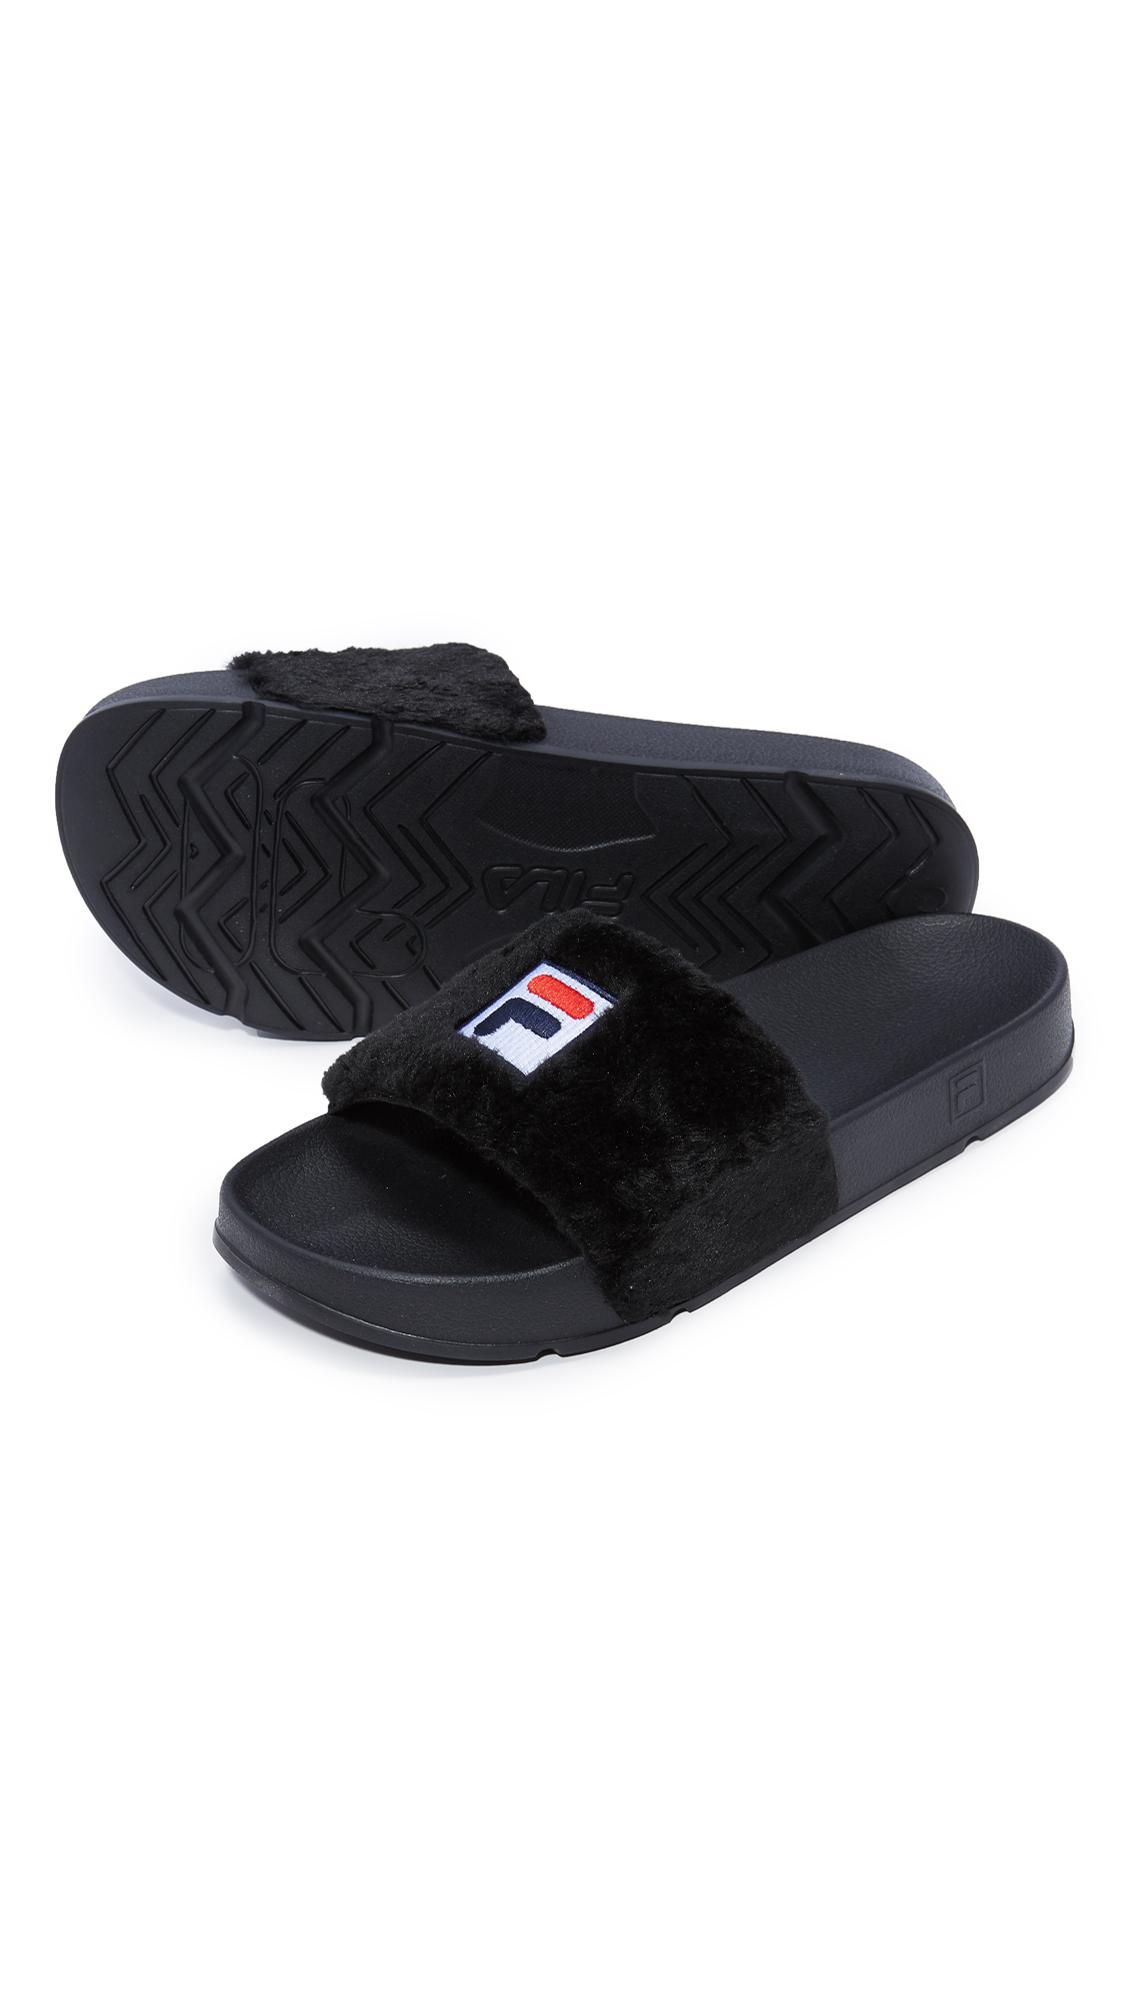 Baja East x FILA Shearling Slide Sandals discount real cheapest price cheap price 4blsUd